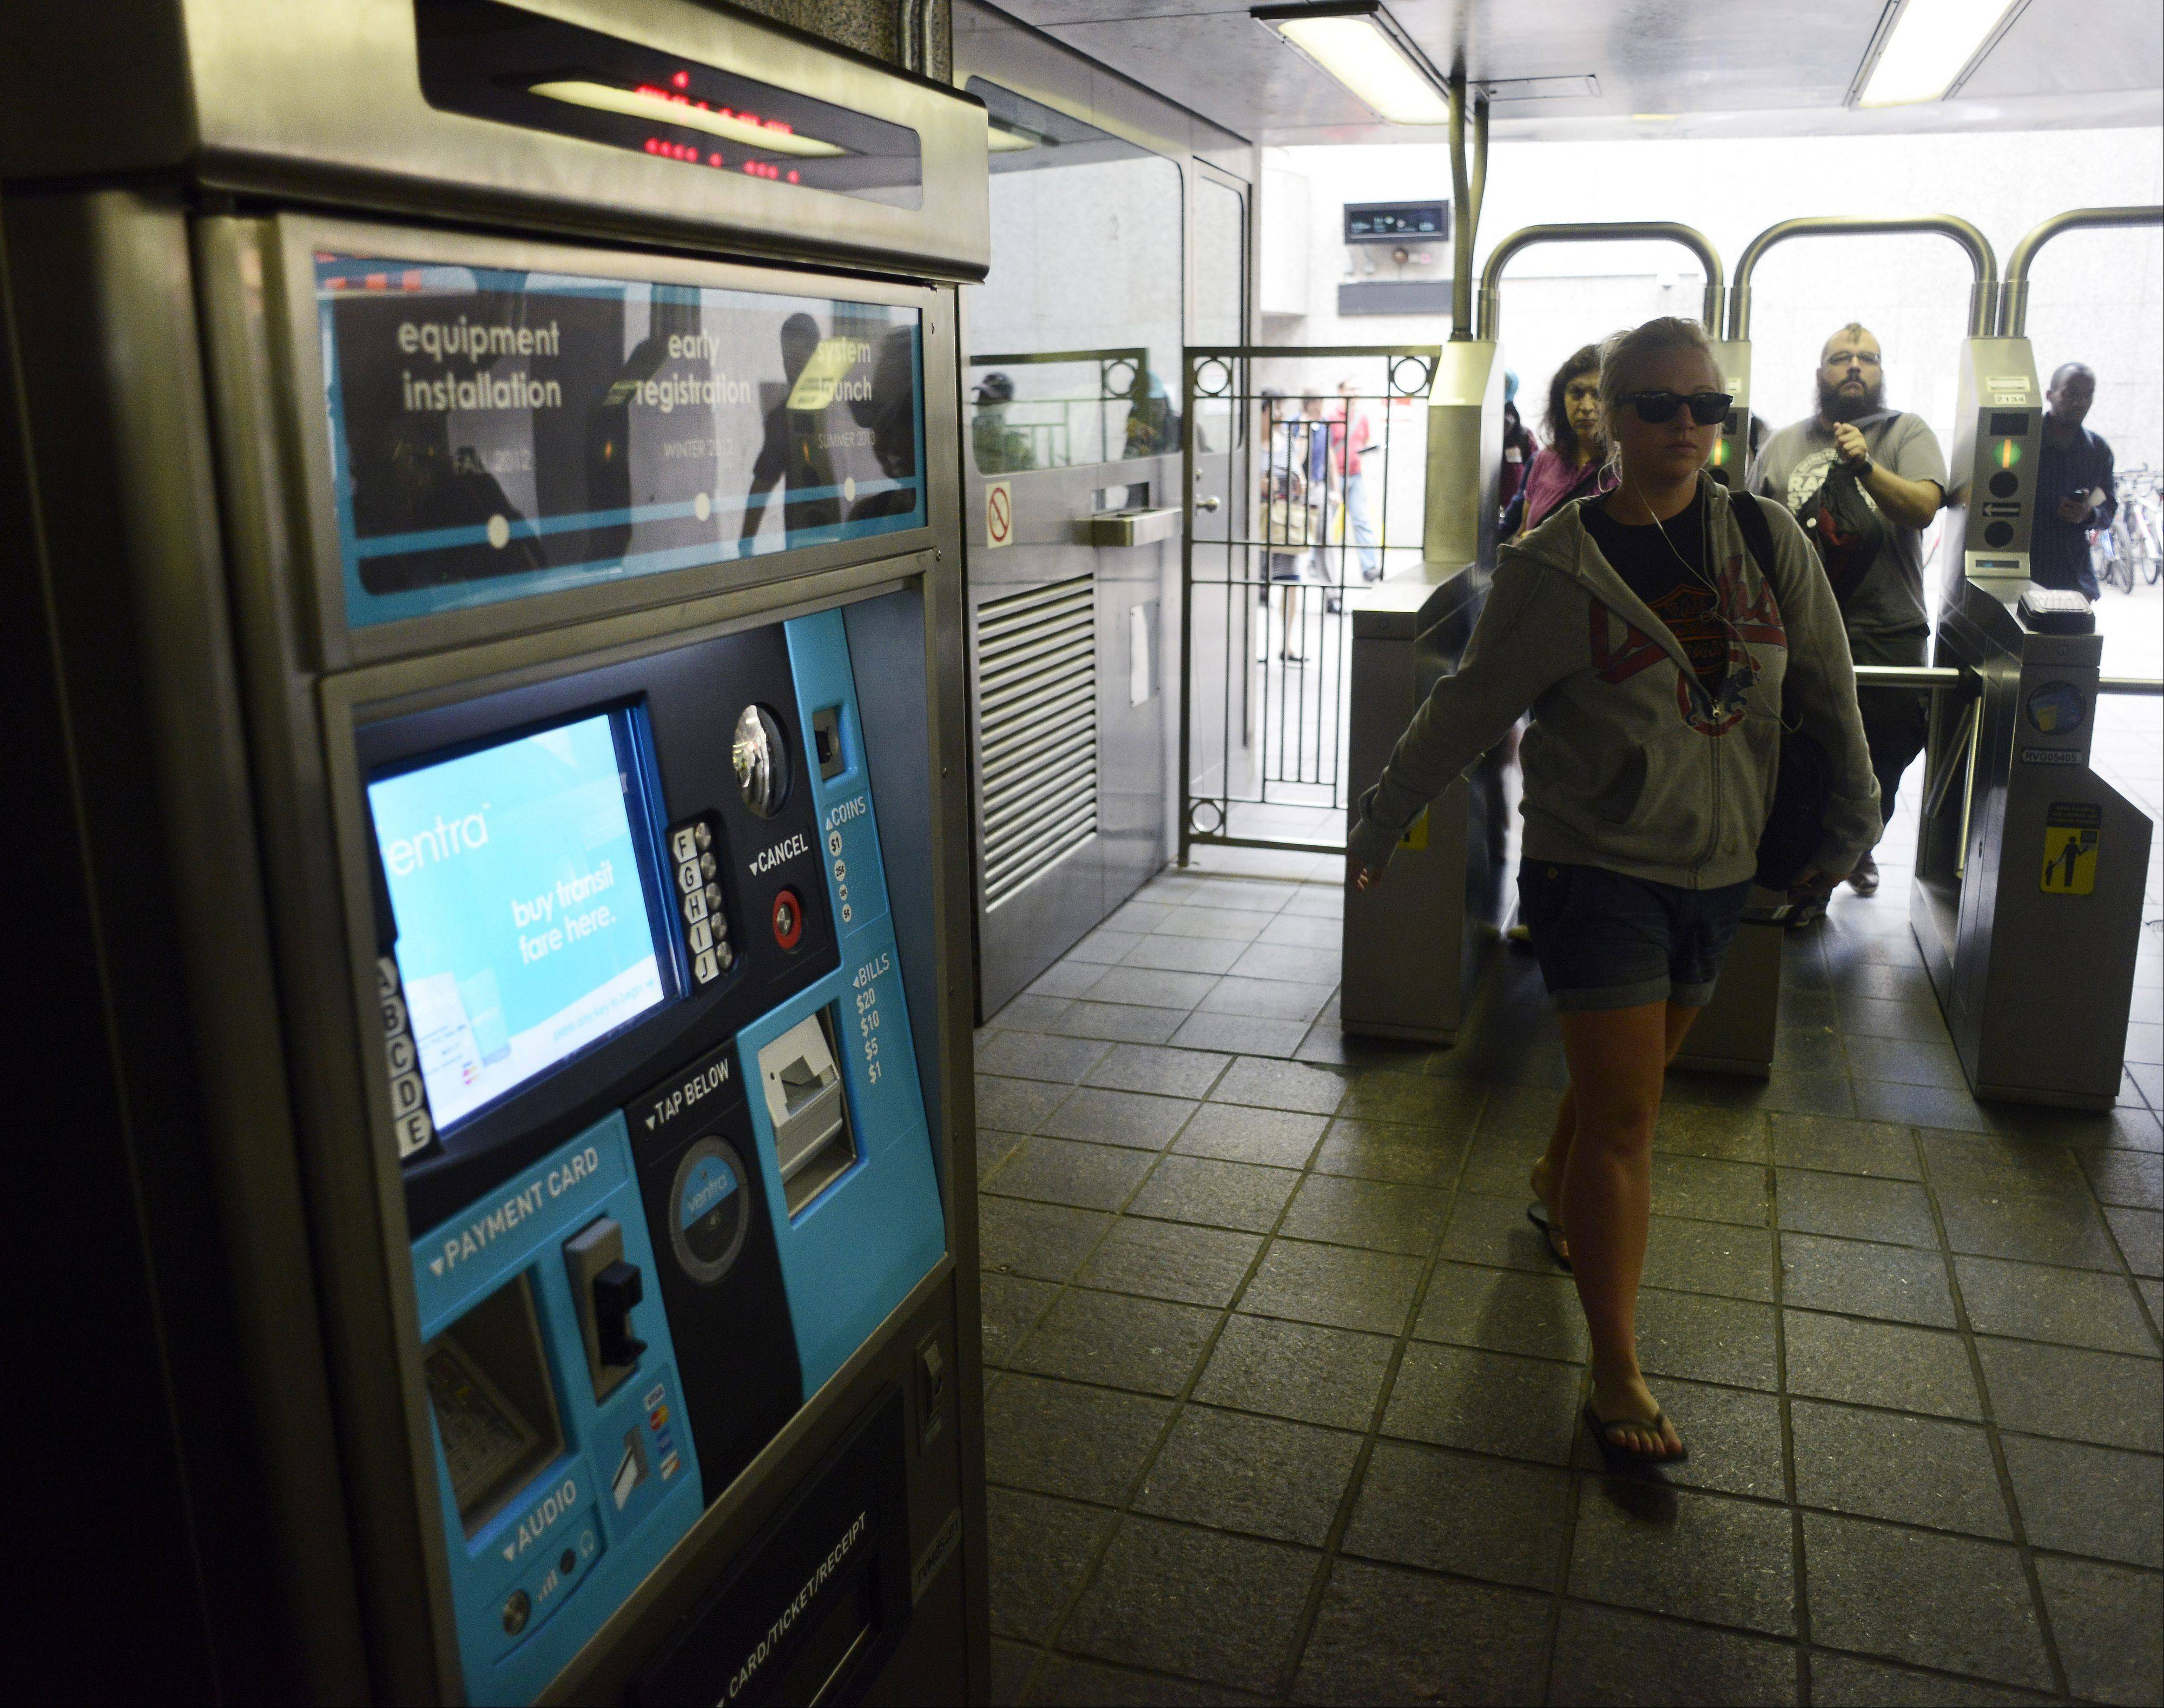 JOE LEWNARD/jlewnard@dailyherald.comA machine for purchasing Ventra fares sits in the Rosemont CTA station.